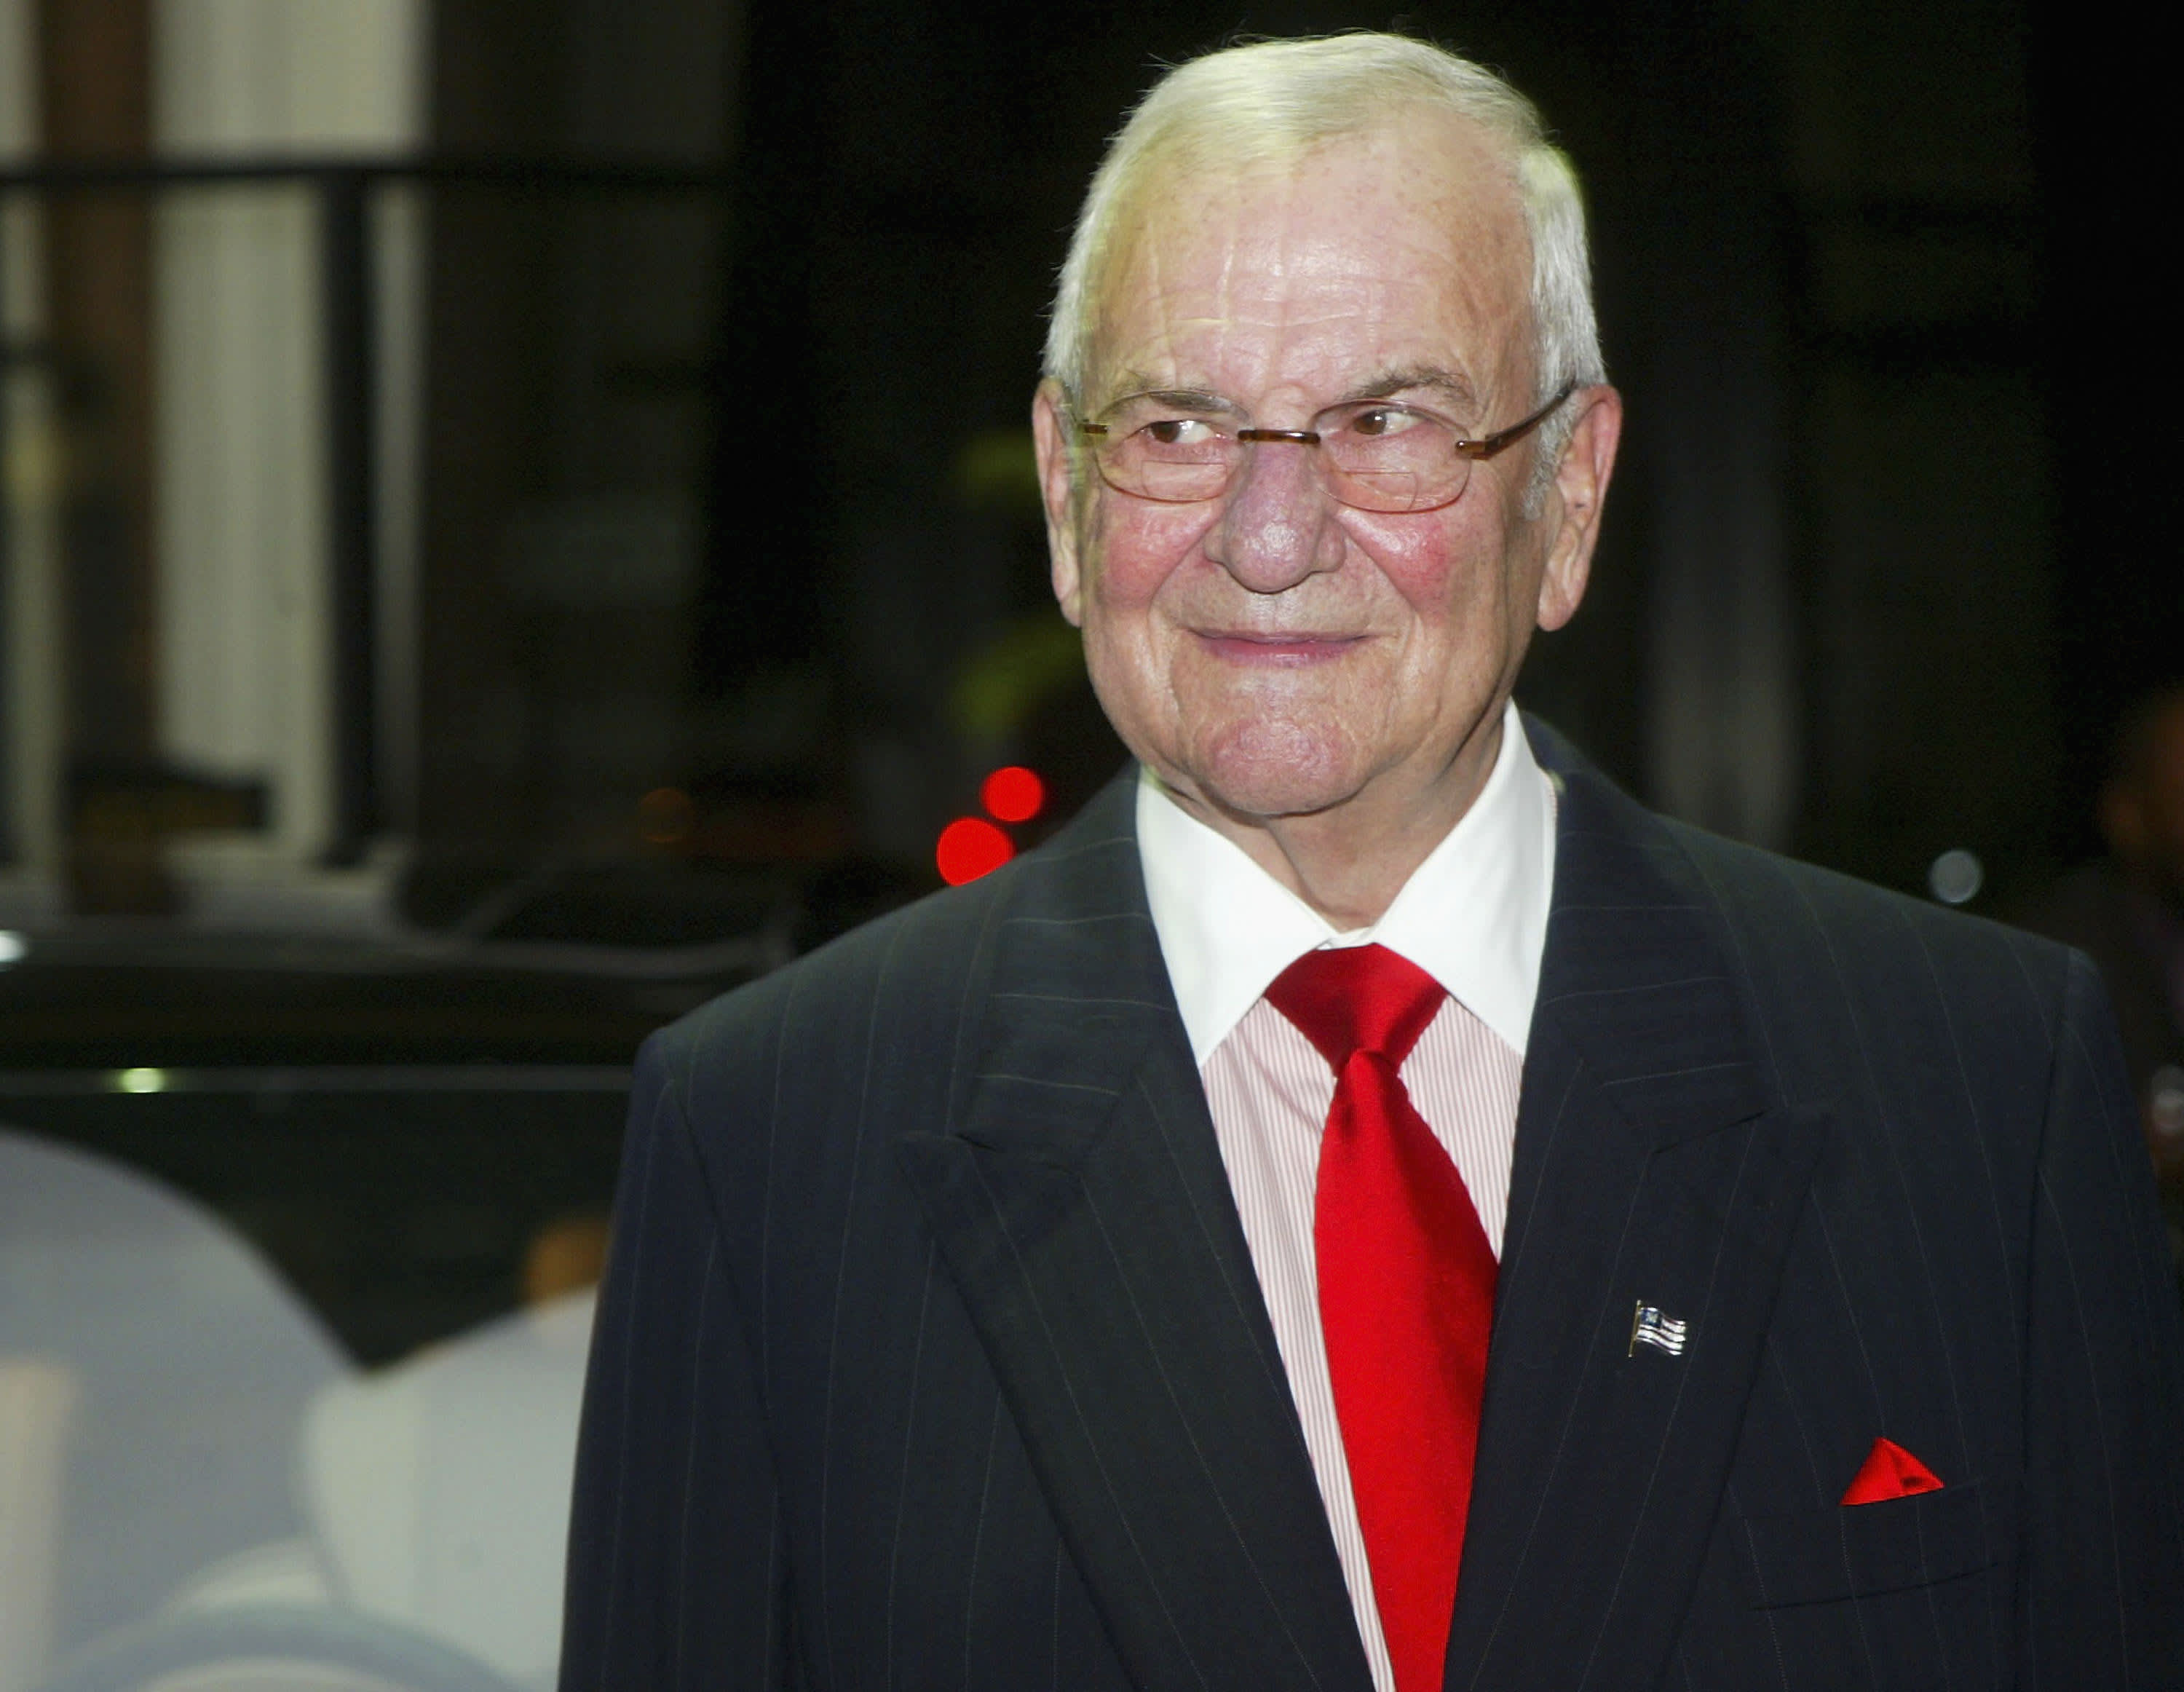 Lee Iacocca, auto industry icon, is dead at 94 thumbnail